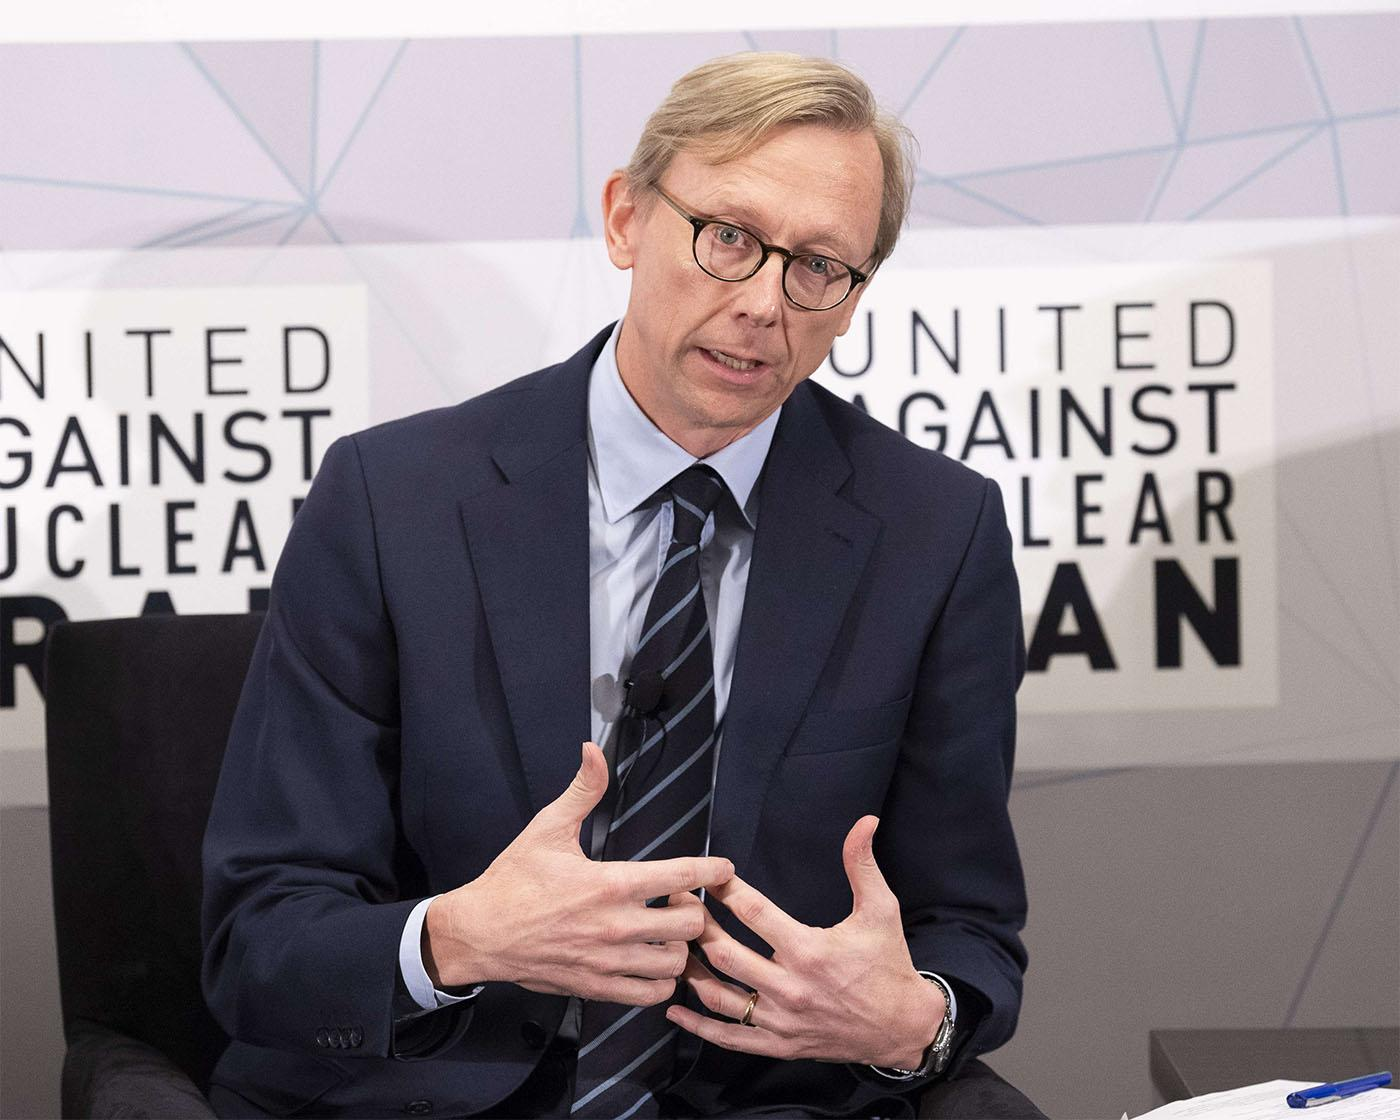 Brian Hook, the State Department's special representative on Iran policy